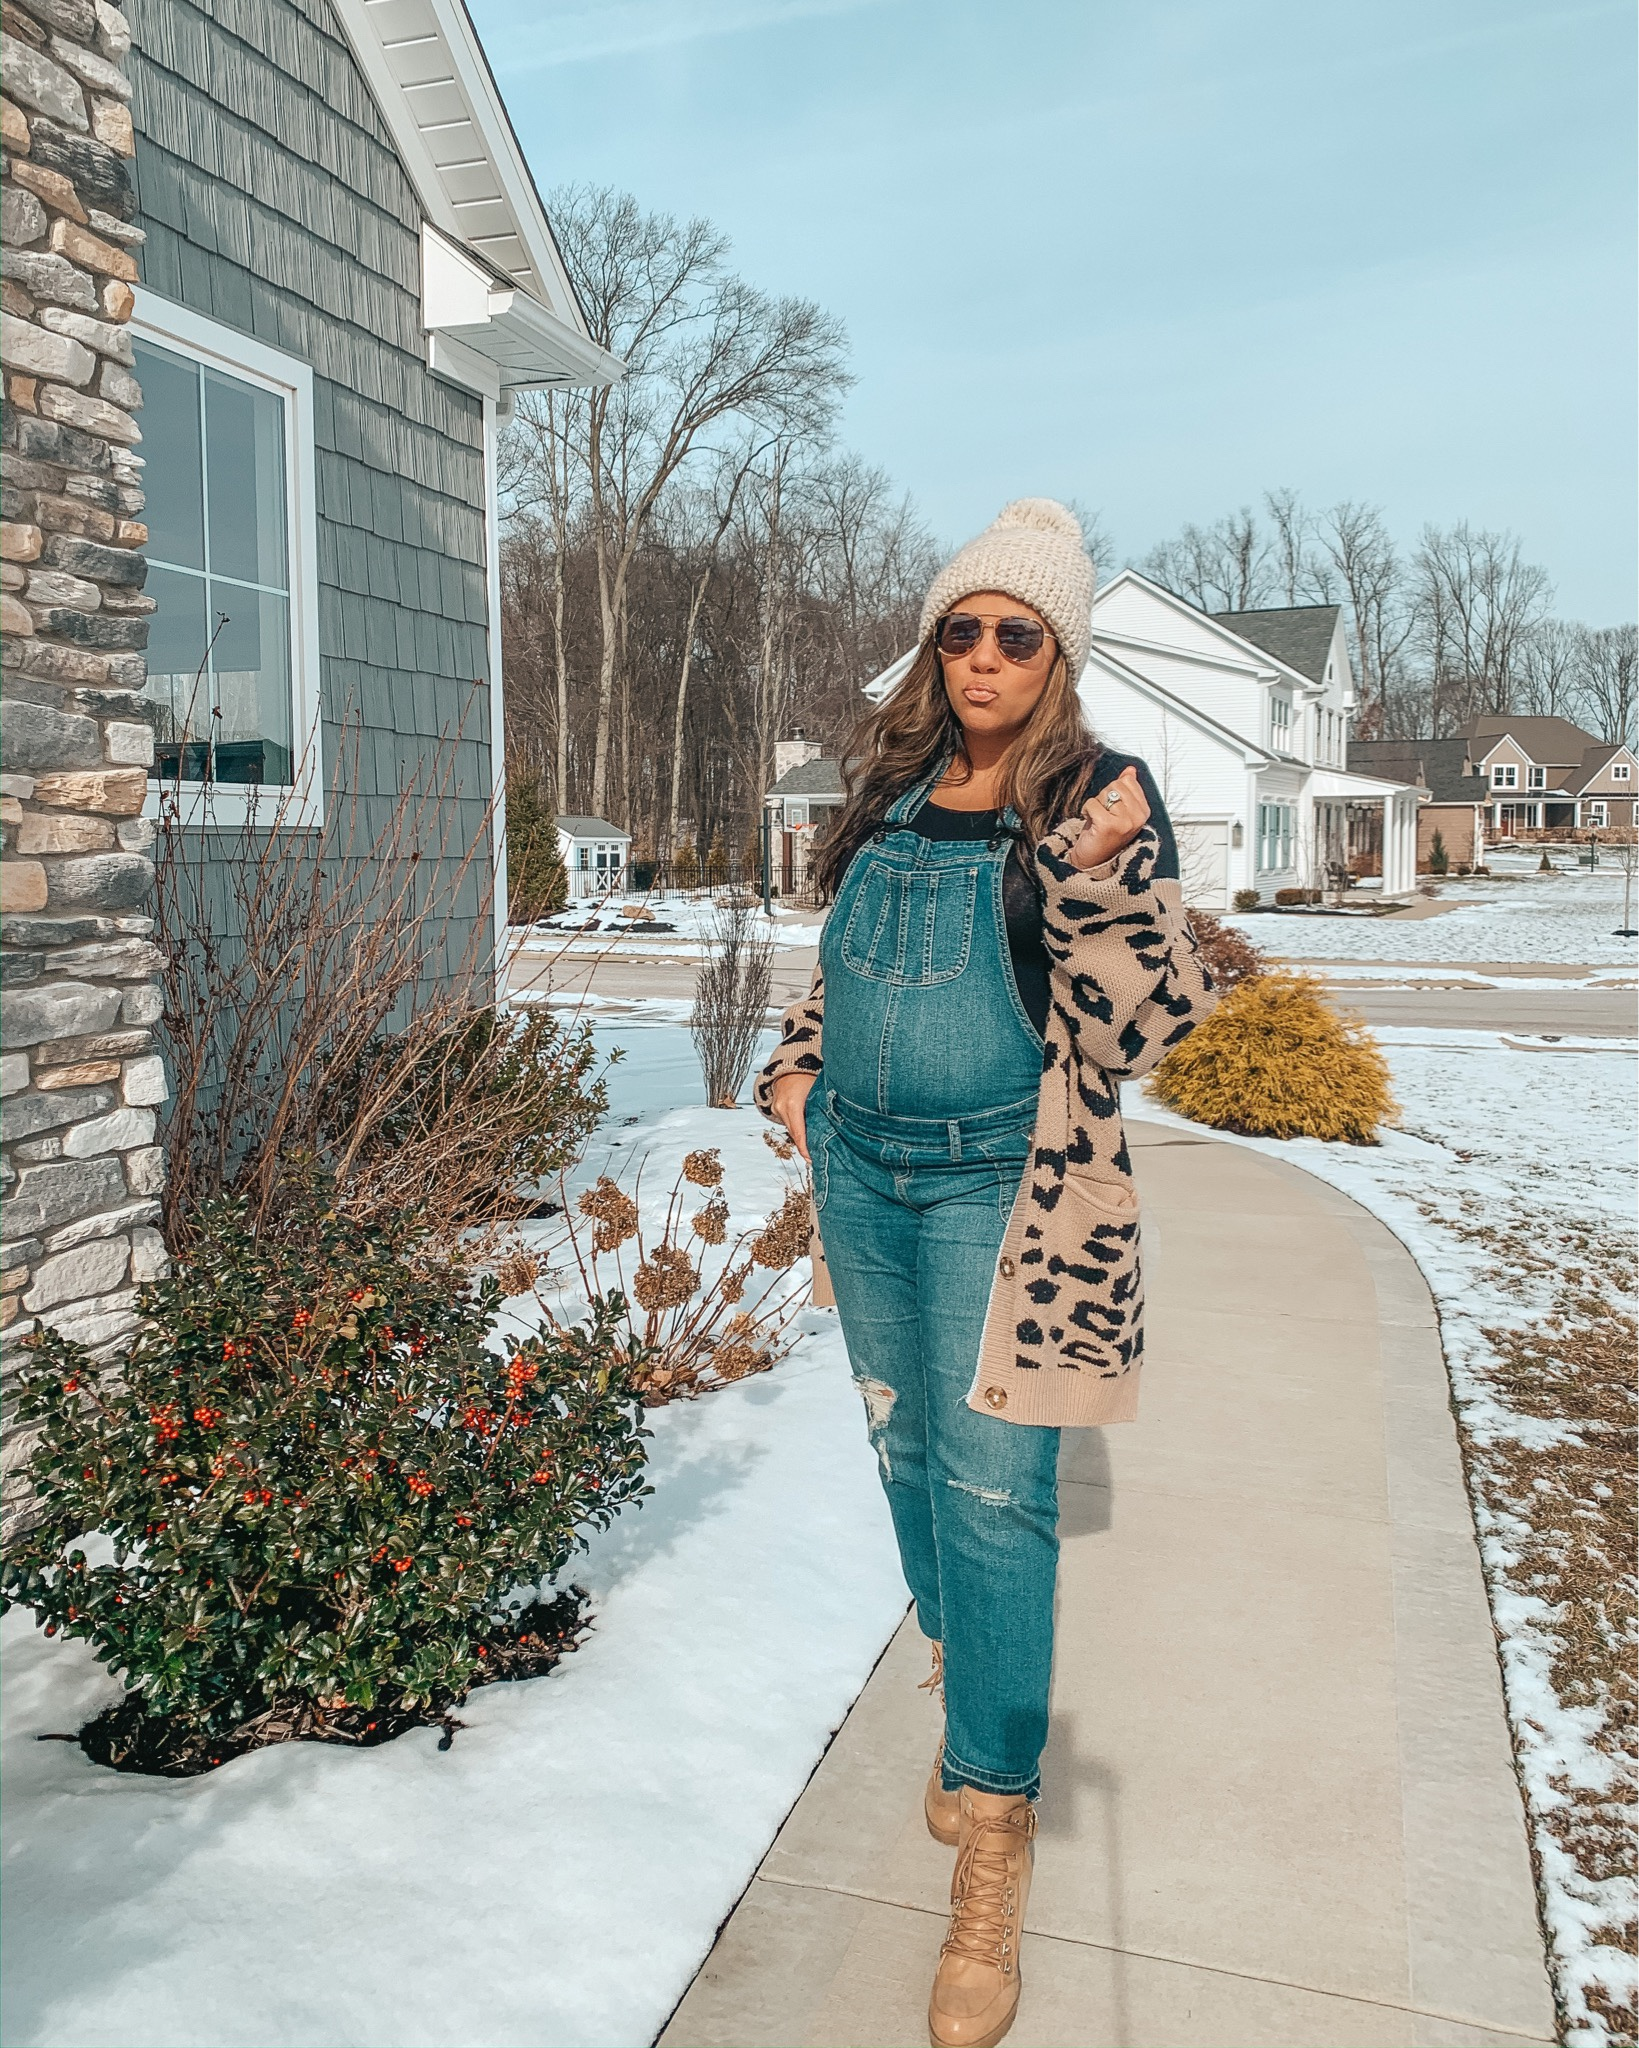 Second Trimester Maternity Clothes & Fashion Trends